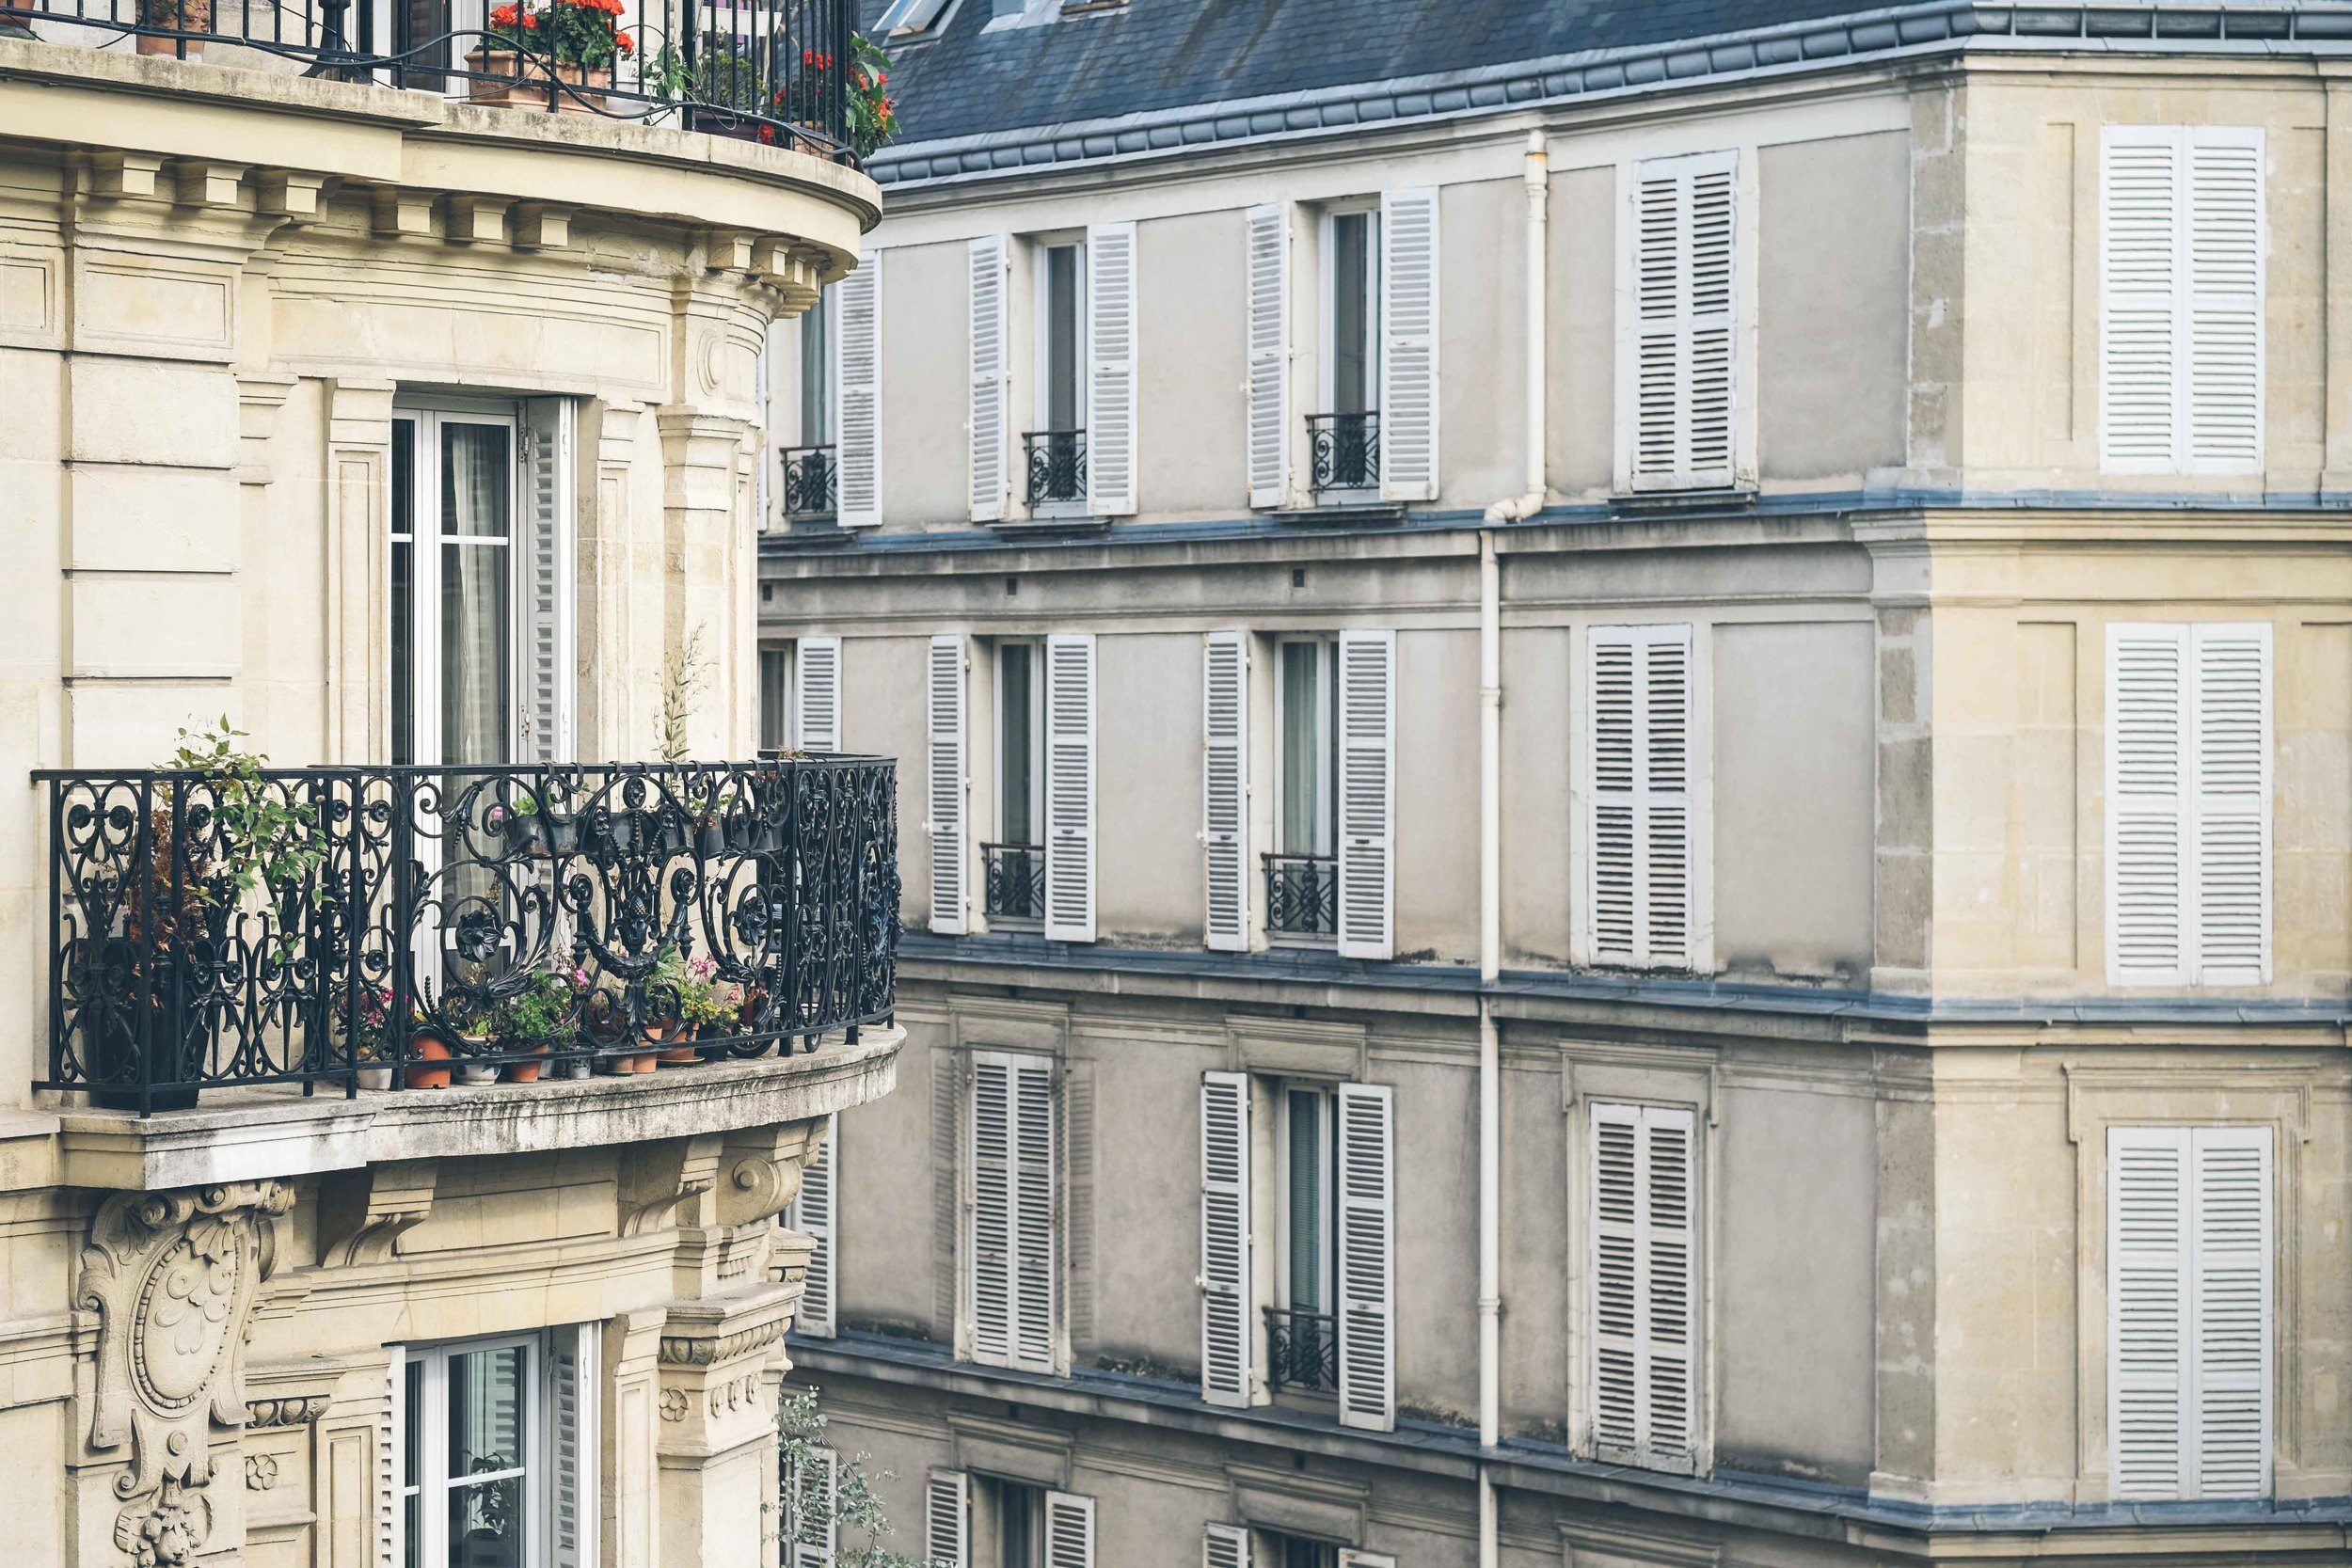 The view from our Montmartre Airbnb apartment